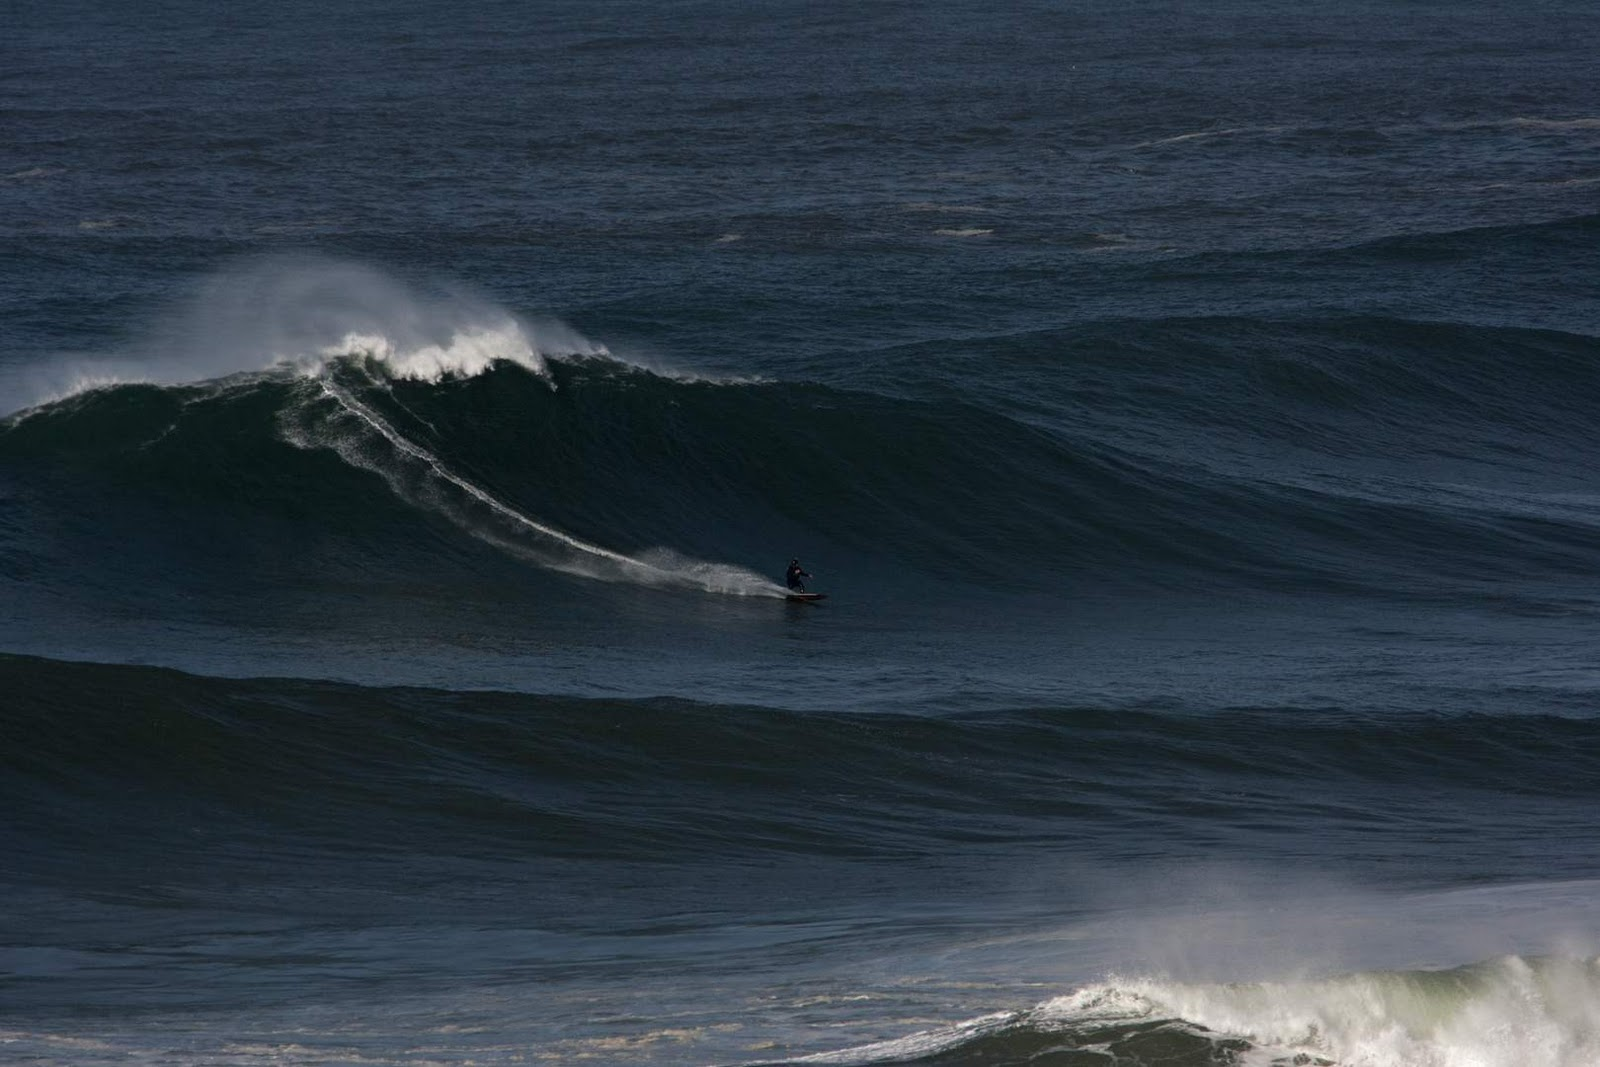 North Canyon Aerial View - Big Waves - Part 1 - Nazare ...  |Nazare Canyon